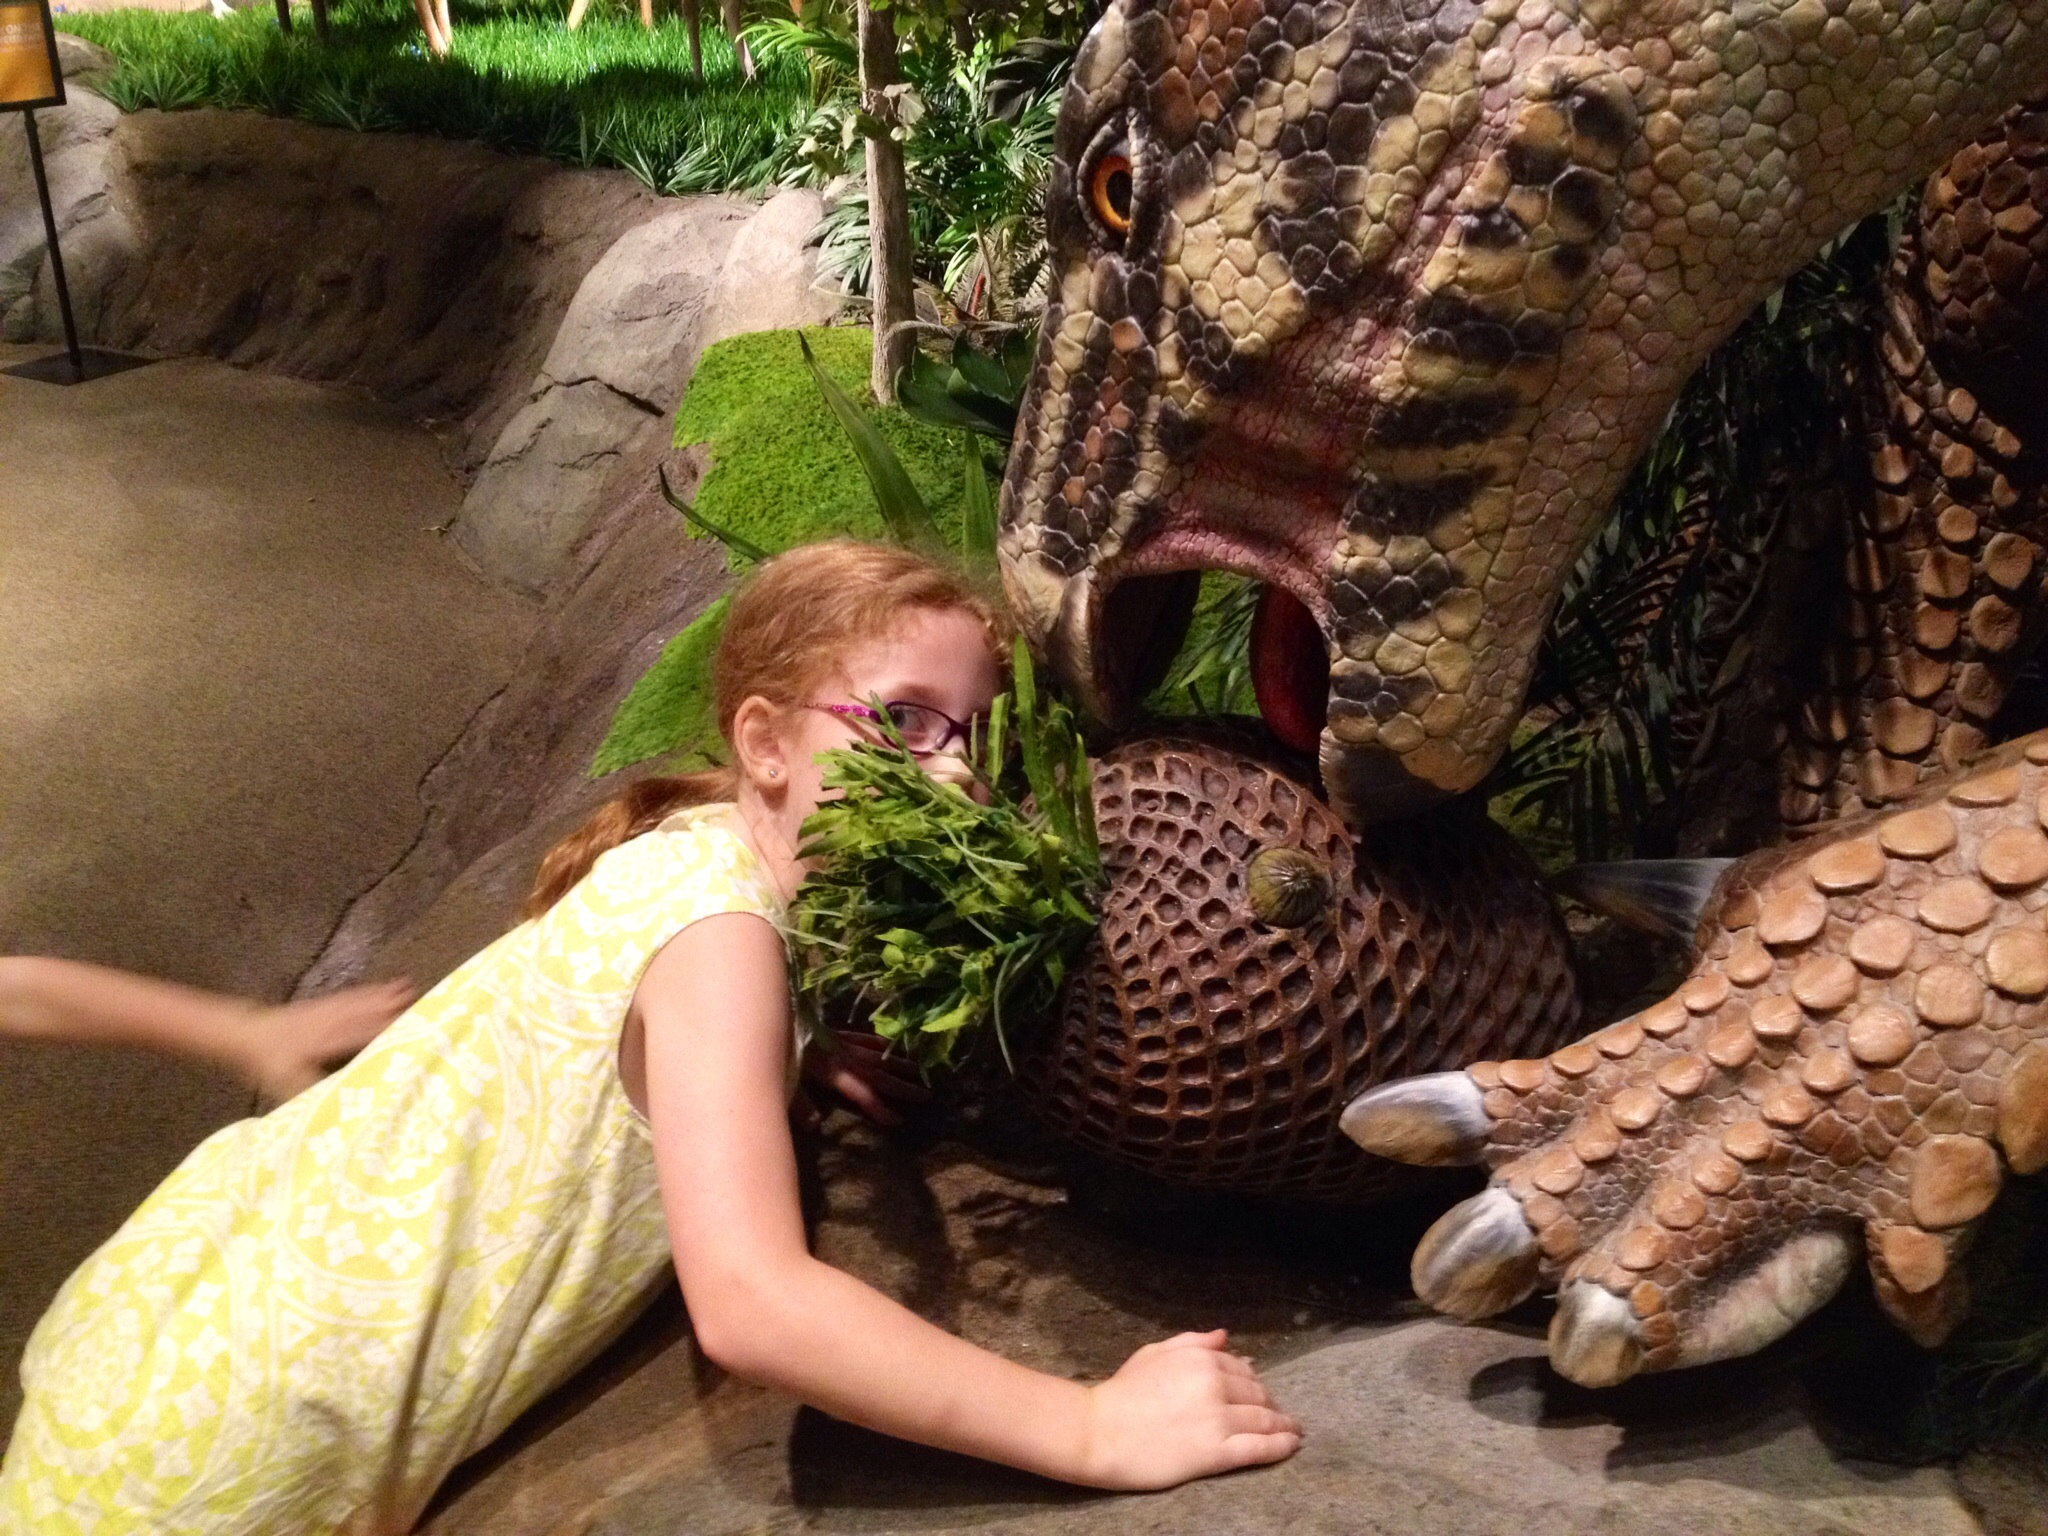 Yes, in the Garden of Eden dinosaurs and humans would sit down for a meal together and share strange melons.